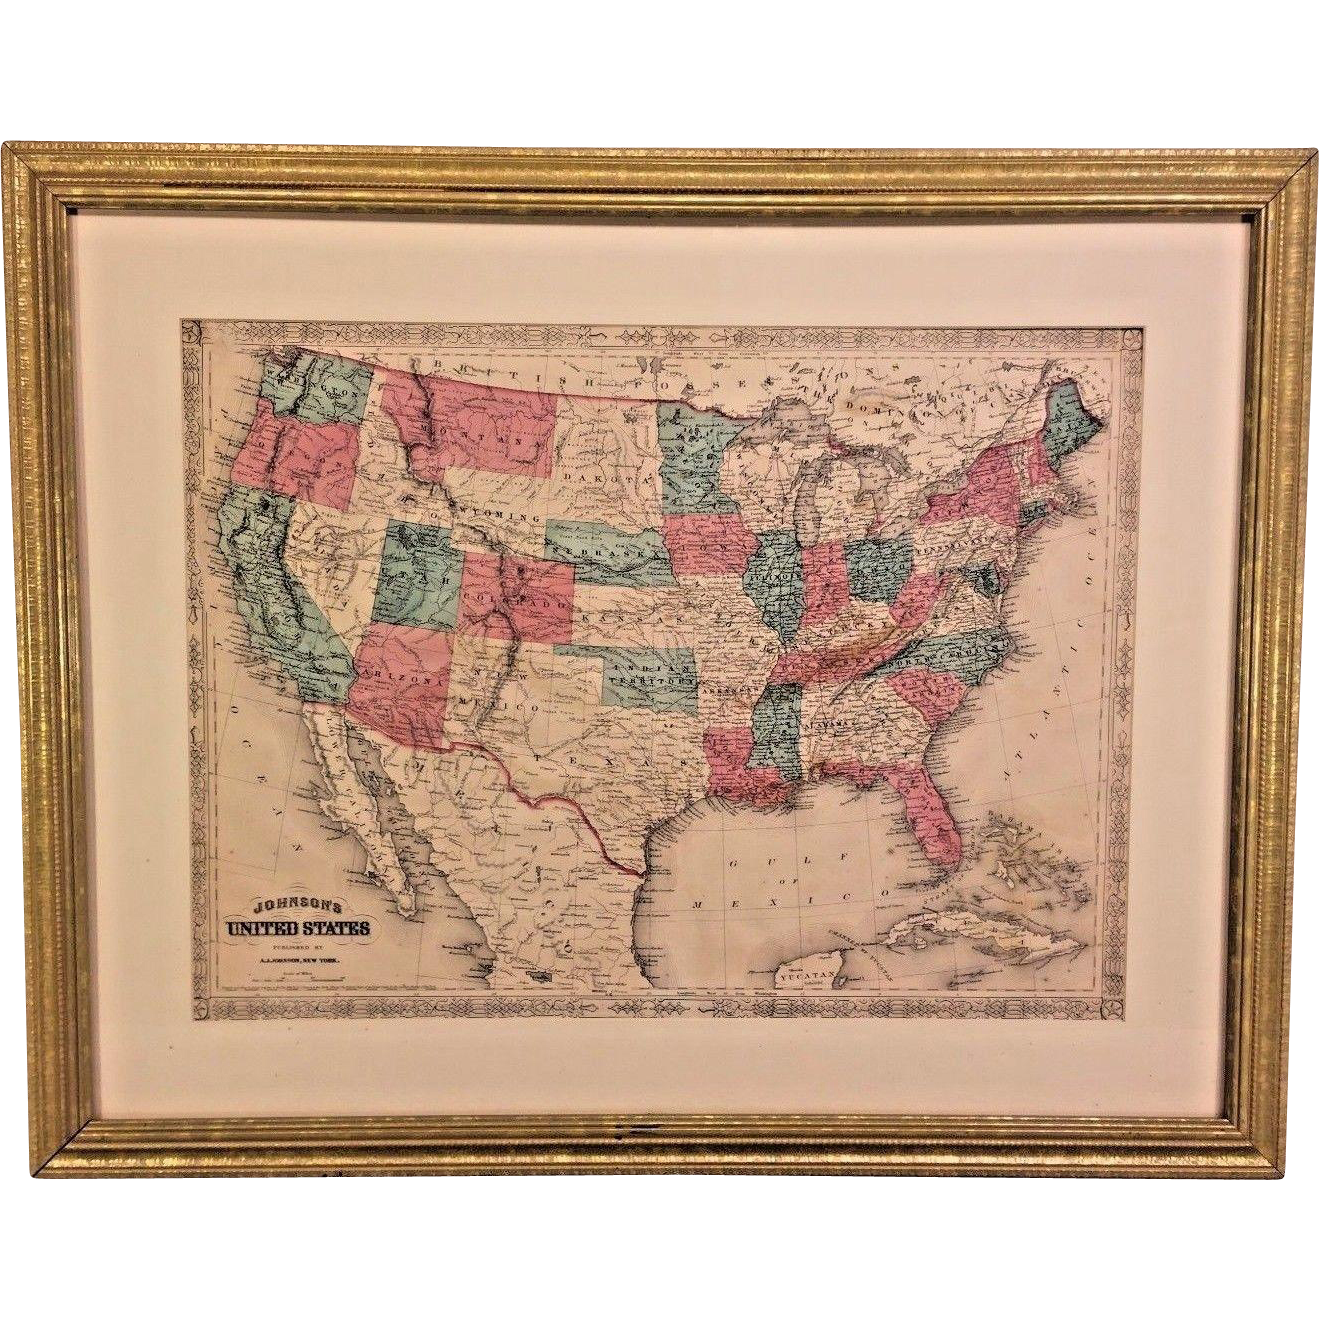 Alvin Jewett Johnson Map Of The United States Framed And - Framed us map